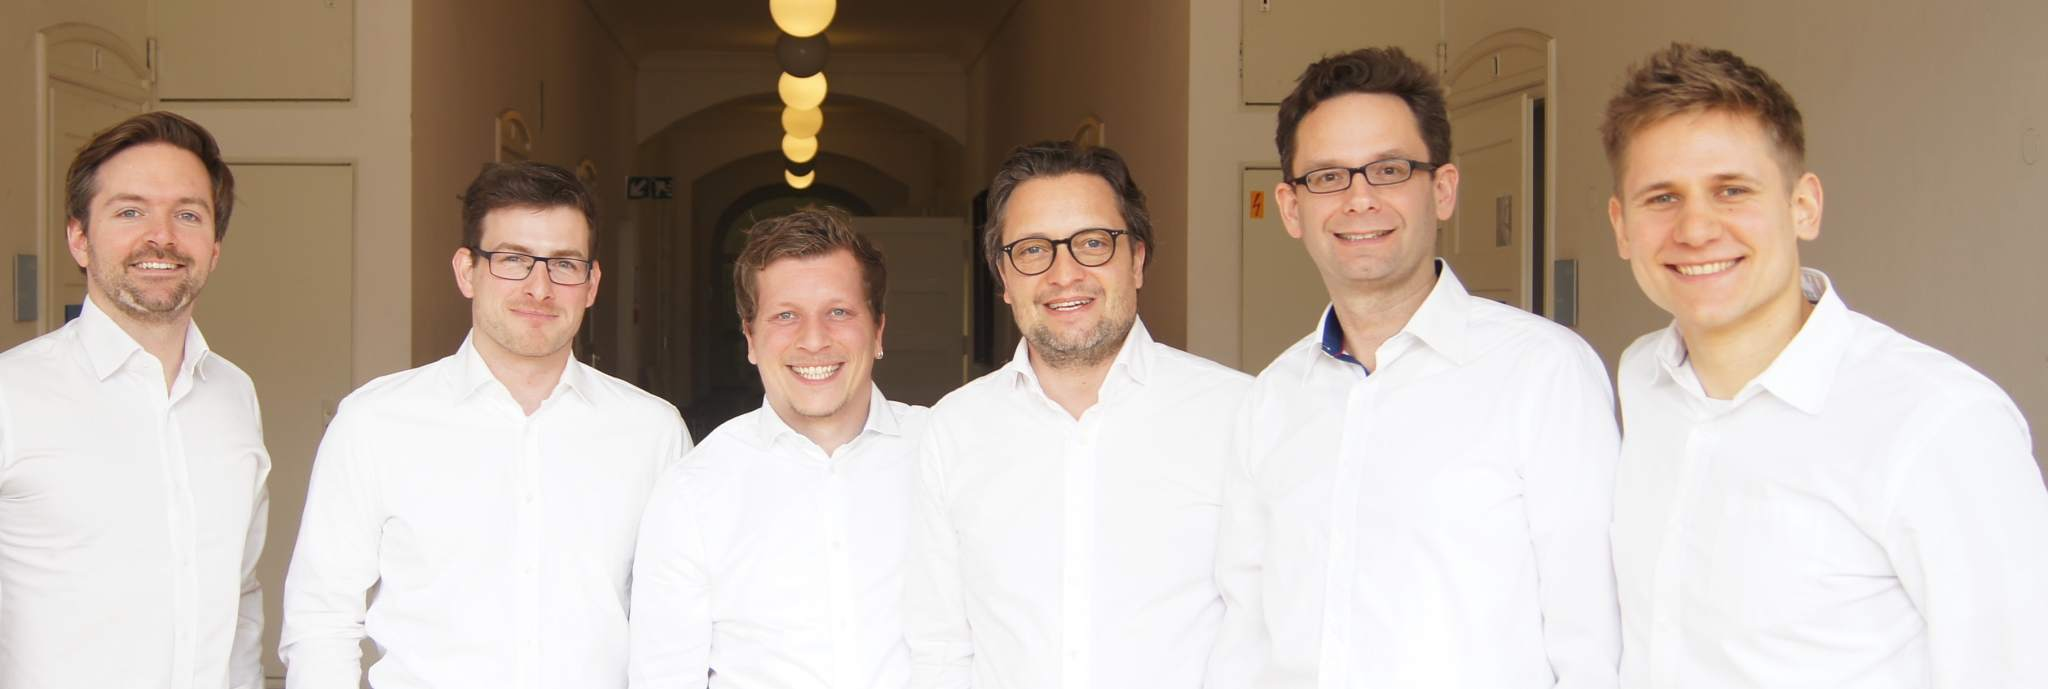 The Mecuris team founders, Manuel Opitz far right. Photo via Mecuris.